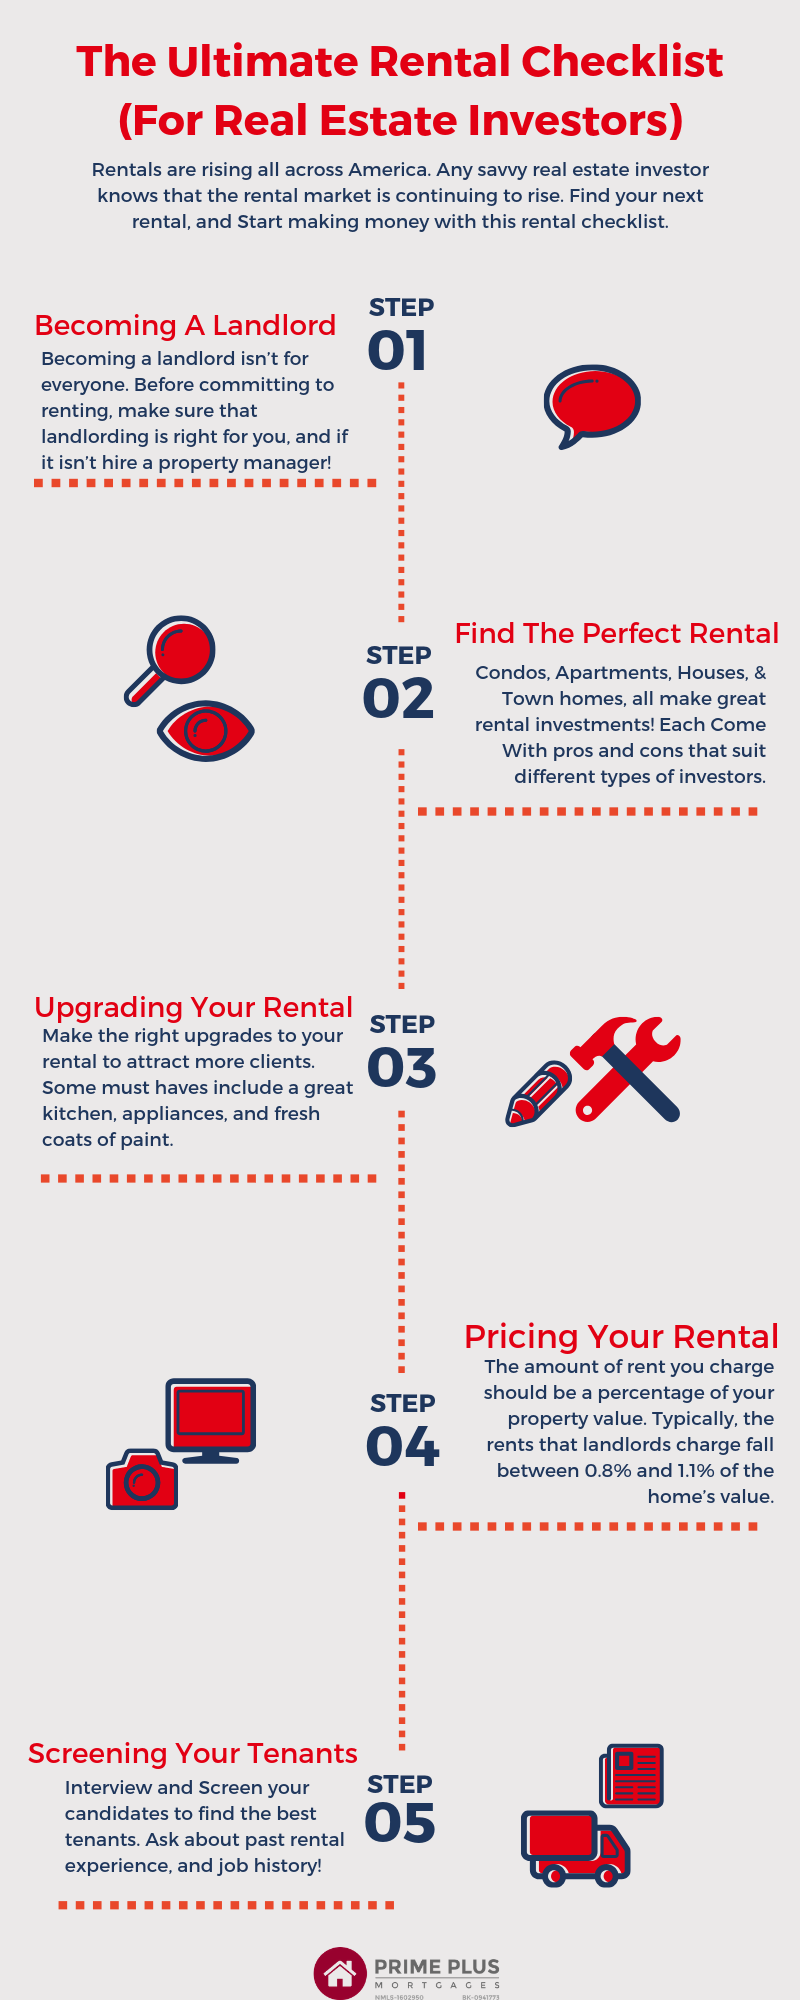 The Ultimate Rental Checklist (How To Make Money Renting